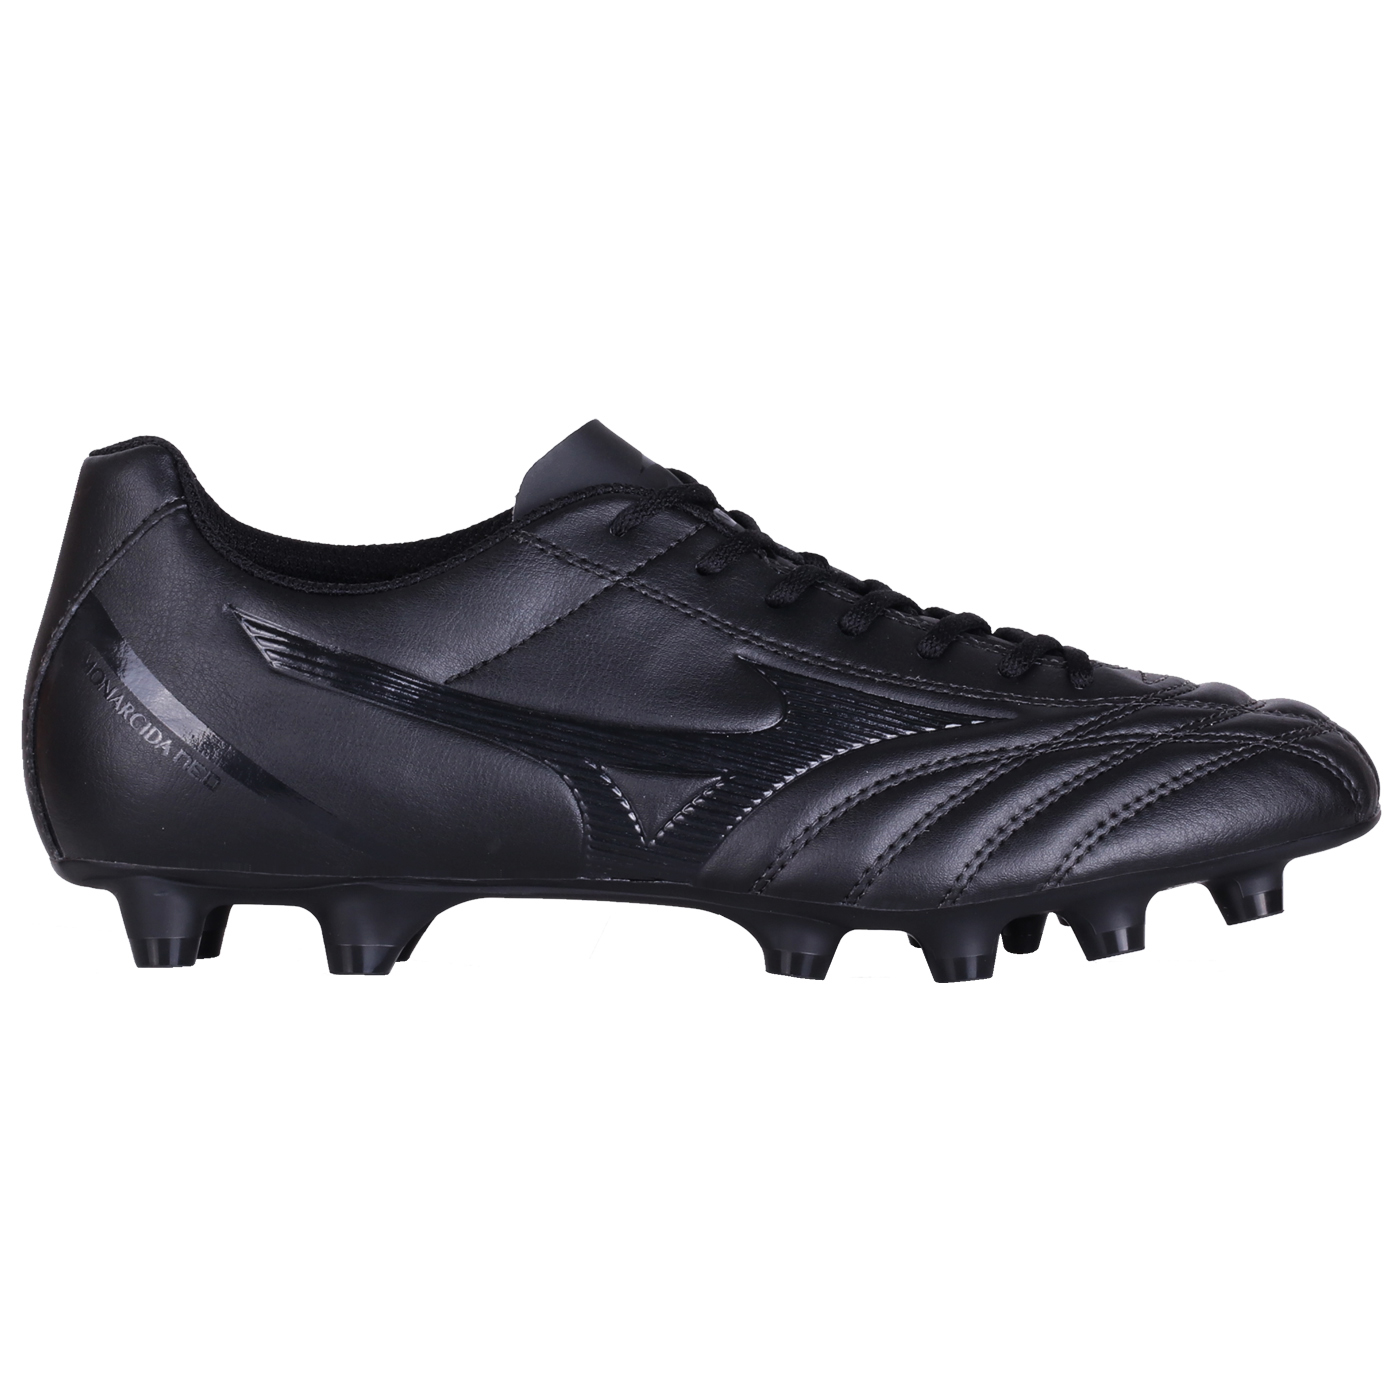 MONARCIDA NEO SELECT-BLACK/BLACK